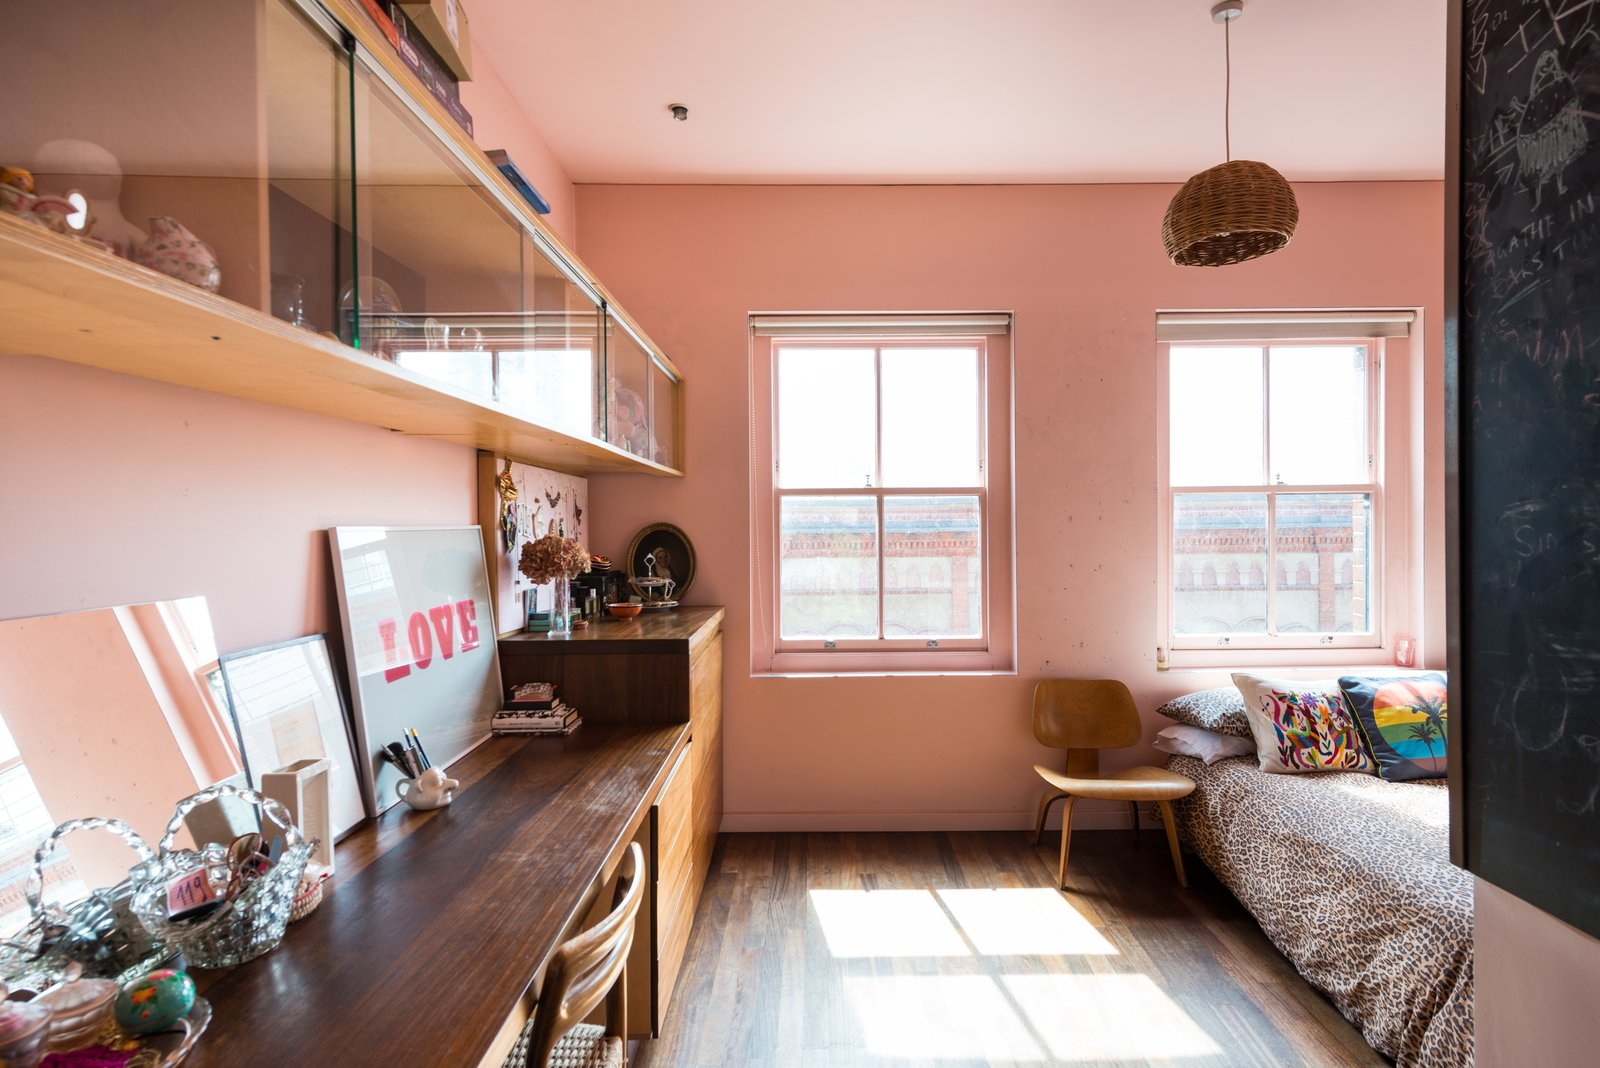 """On the second floor, you'll find two bedrooms, including a room that has a """"windowed cockpit,"""" which Brinkworth designed for the owners' children to look out over the garden."""